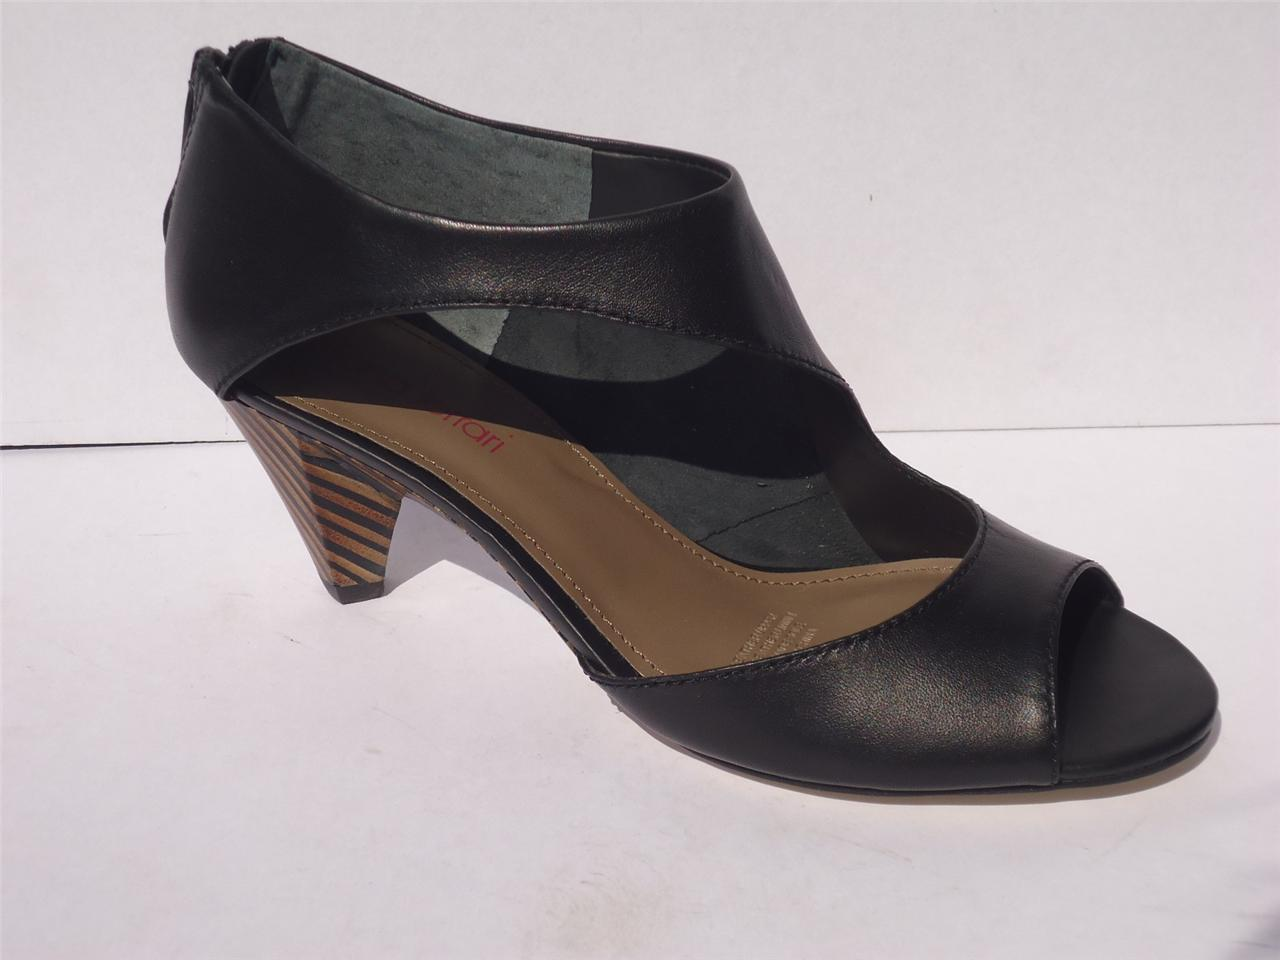 New-Womens-Diana-Ferrari-Leather-Dress-Work-Heel-Shoe-Black-Size-6-7-8-9-10-11